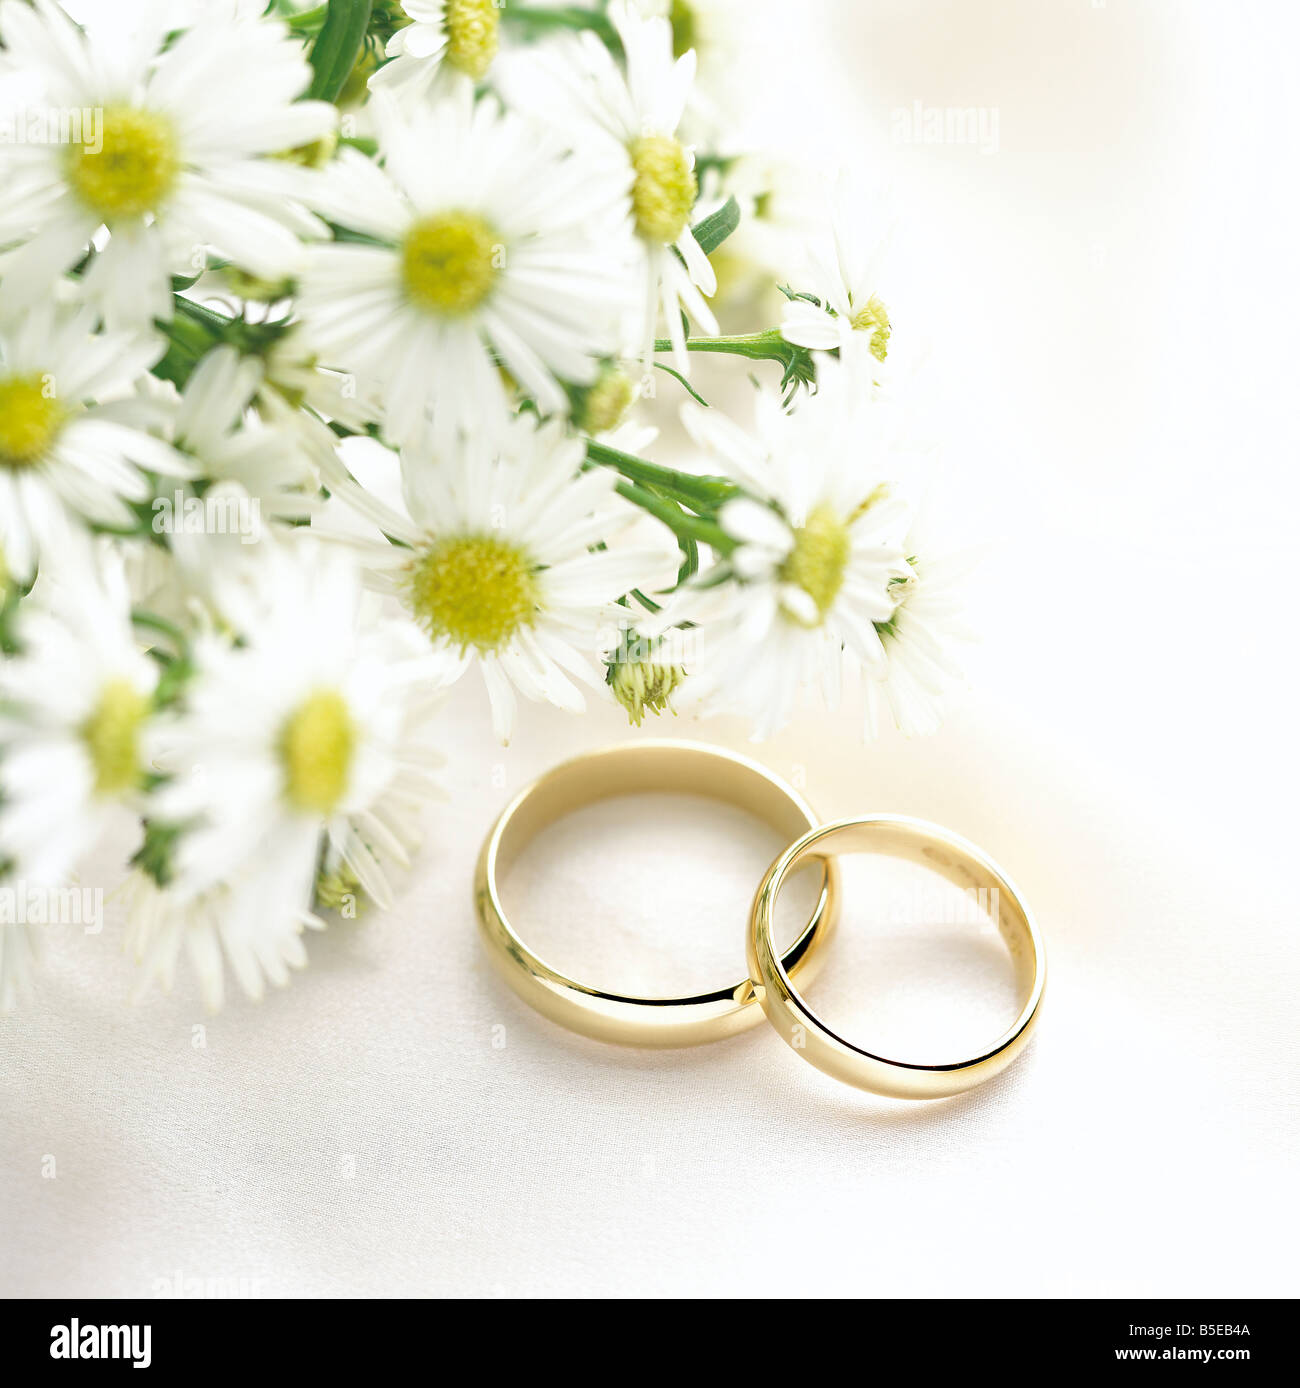 Two Gold Rings On White Textured Fabric Cloth Background With Daisy